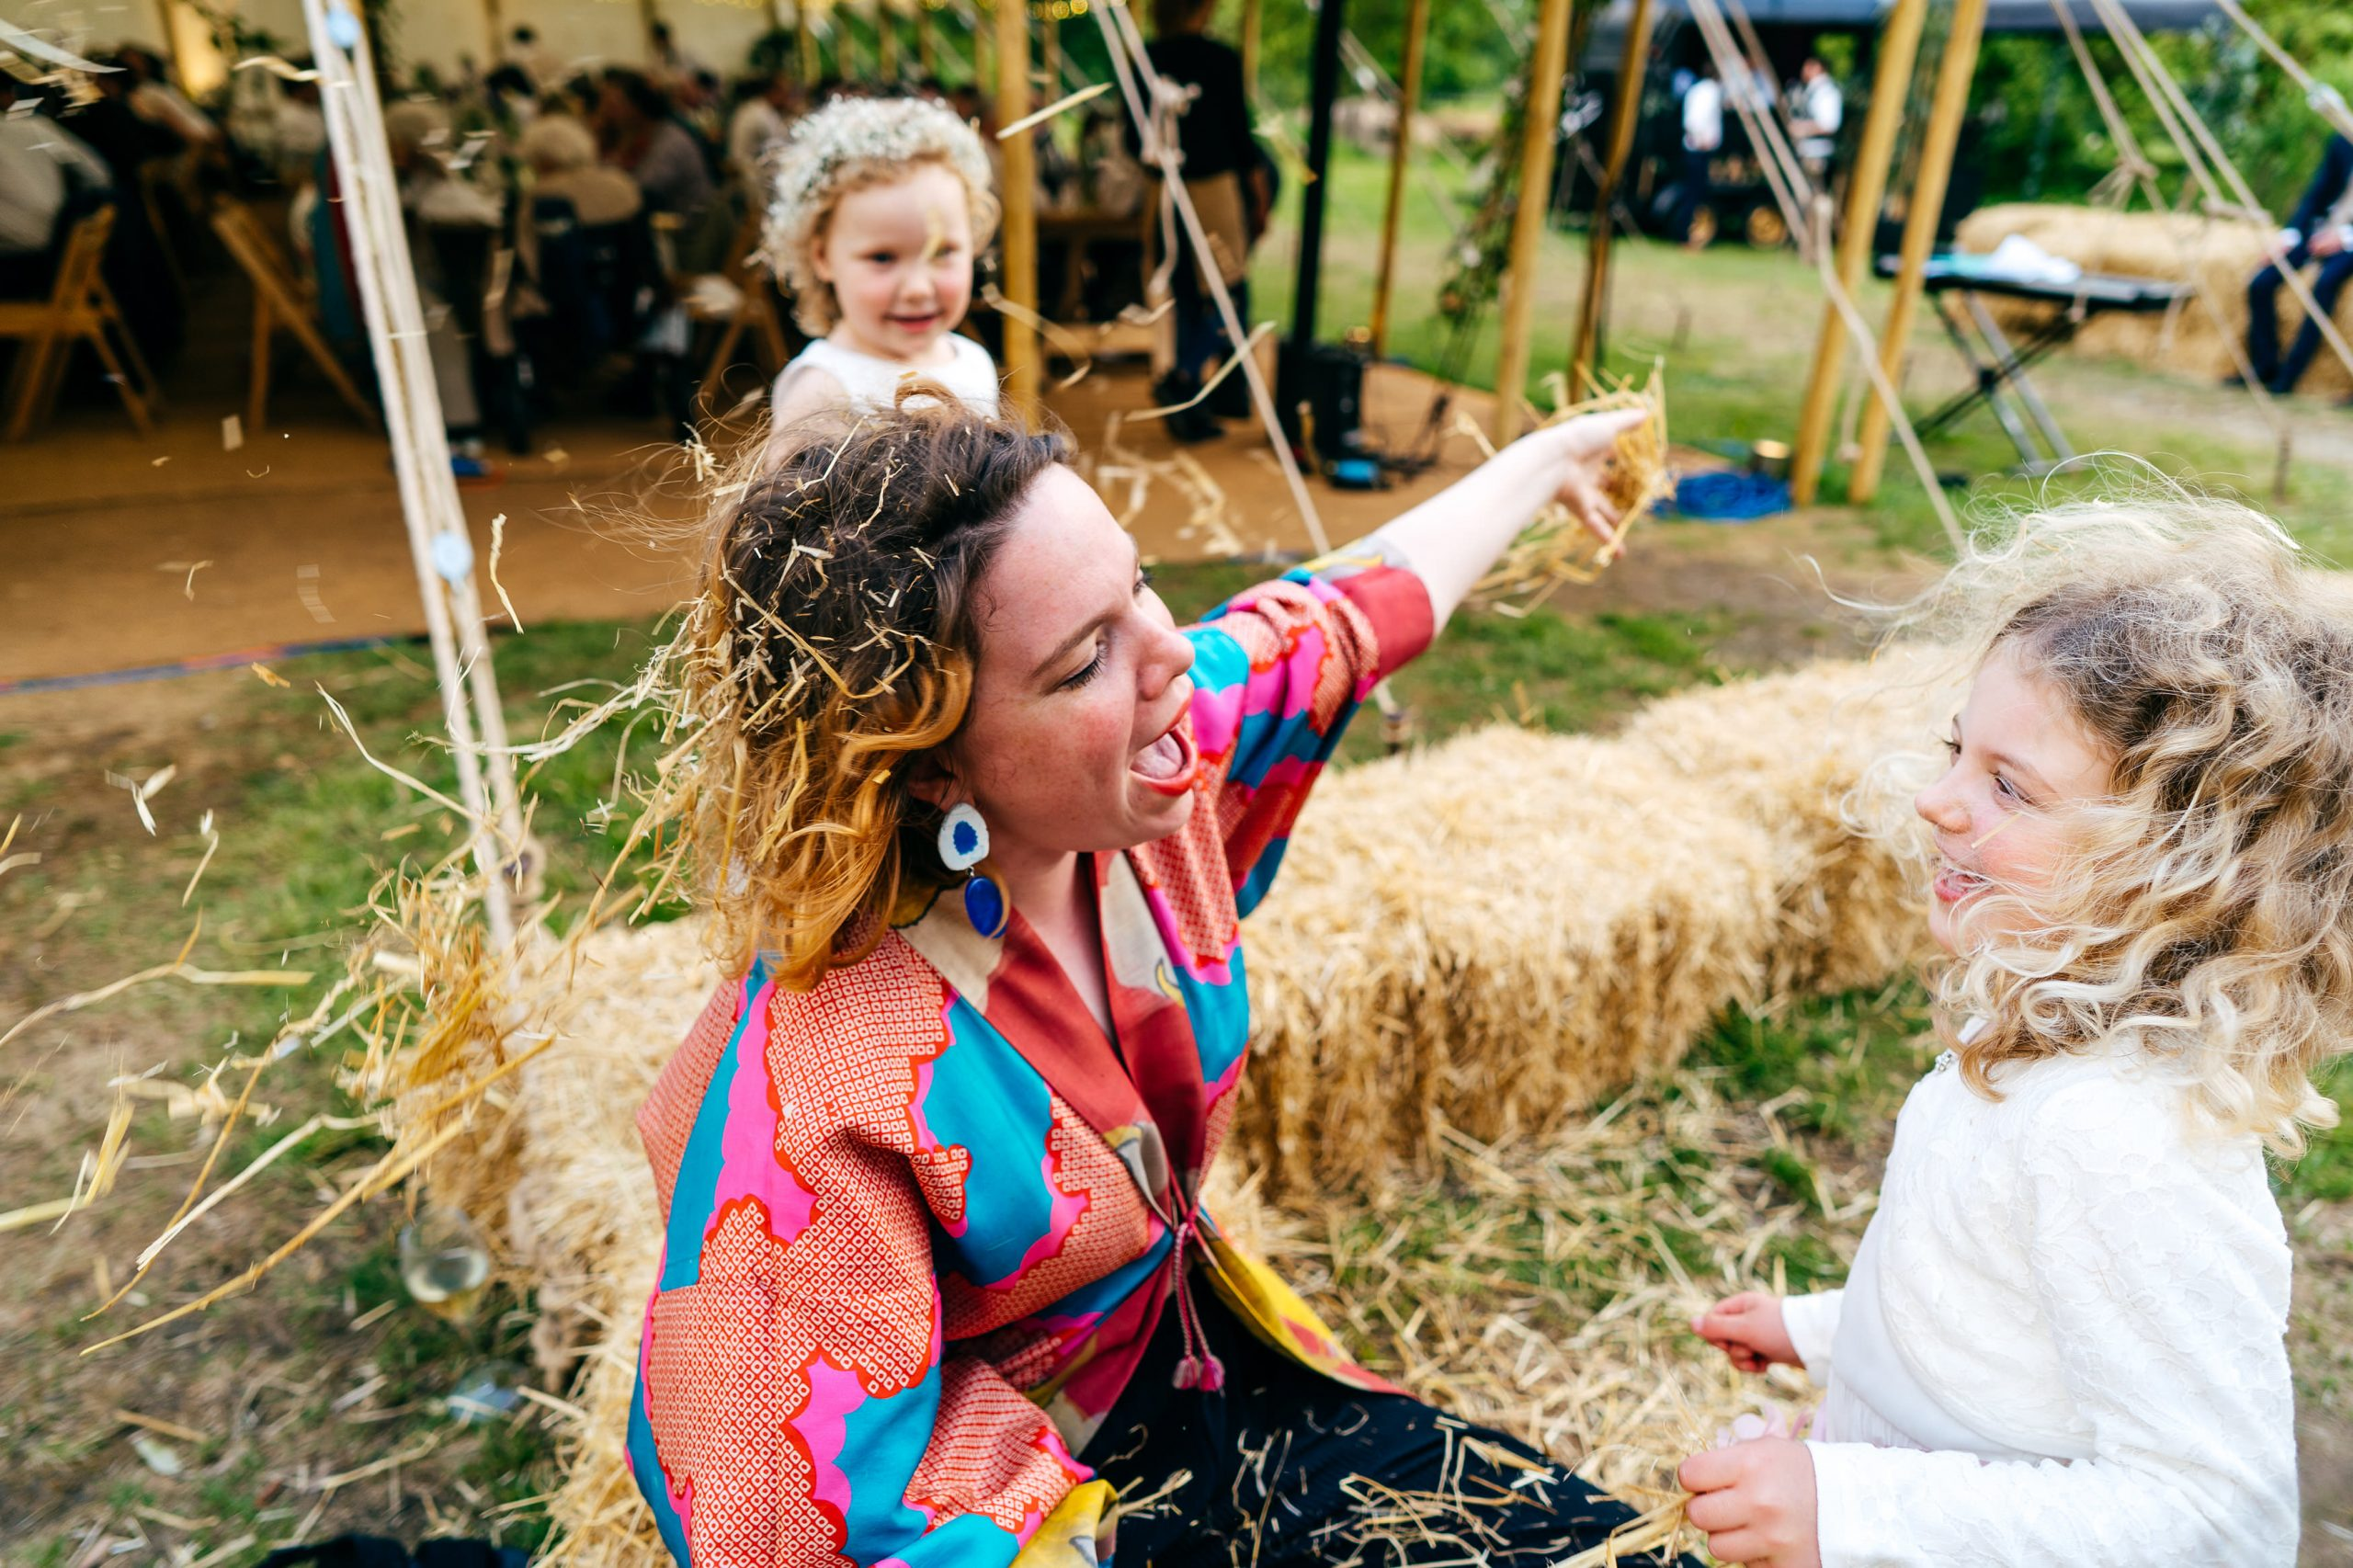 Drunk wedding guest entertains children by letting them put hay in her hair at Sparkford Hall Wedding